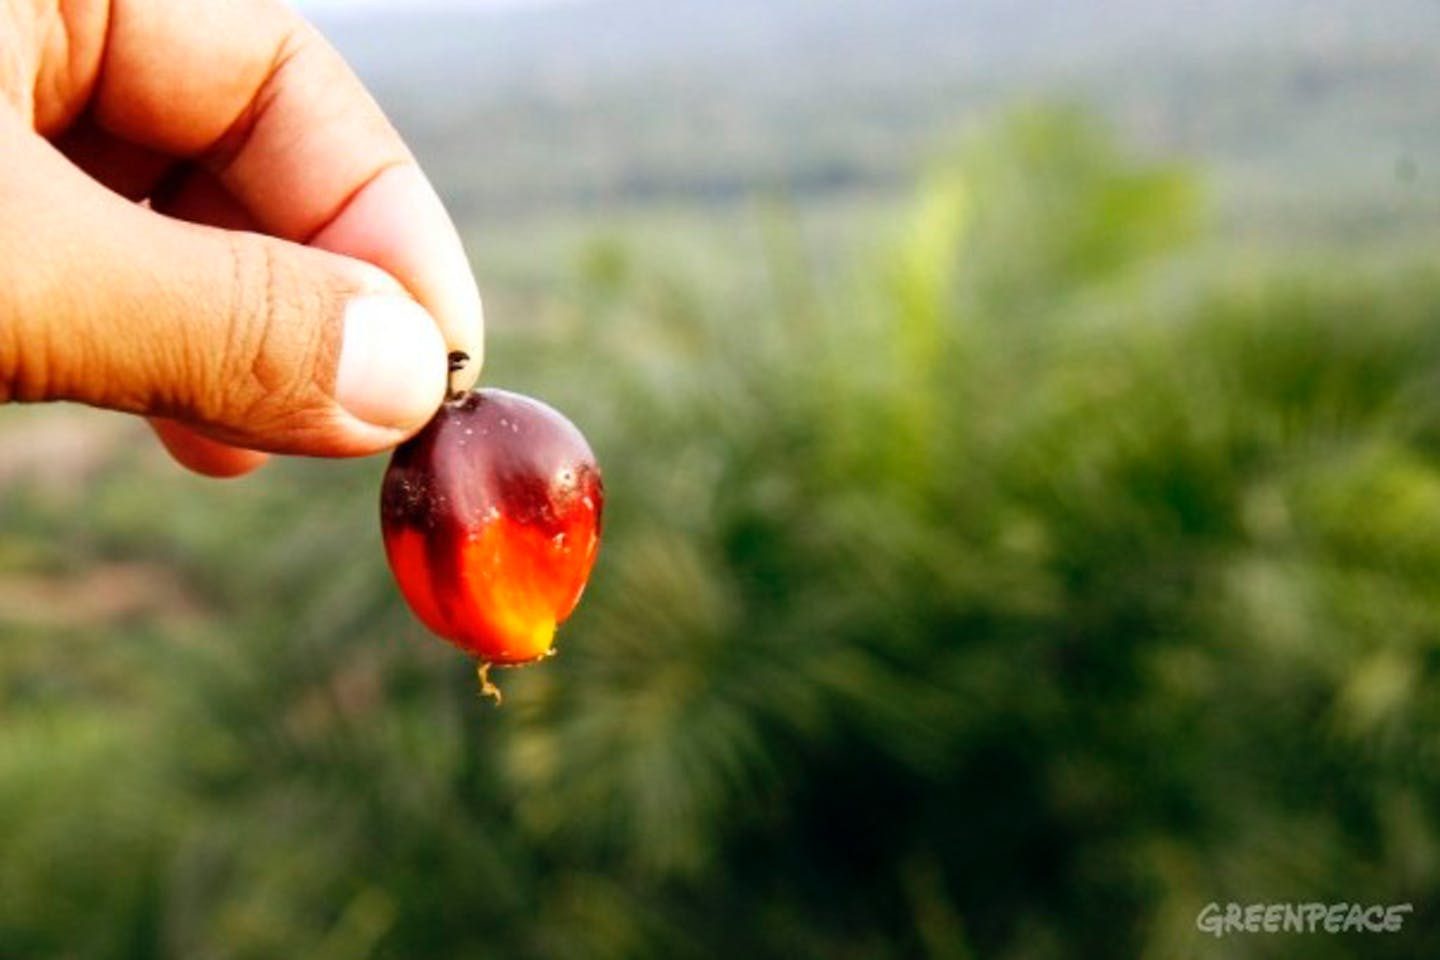 Greenpeace Indonesia palm oil